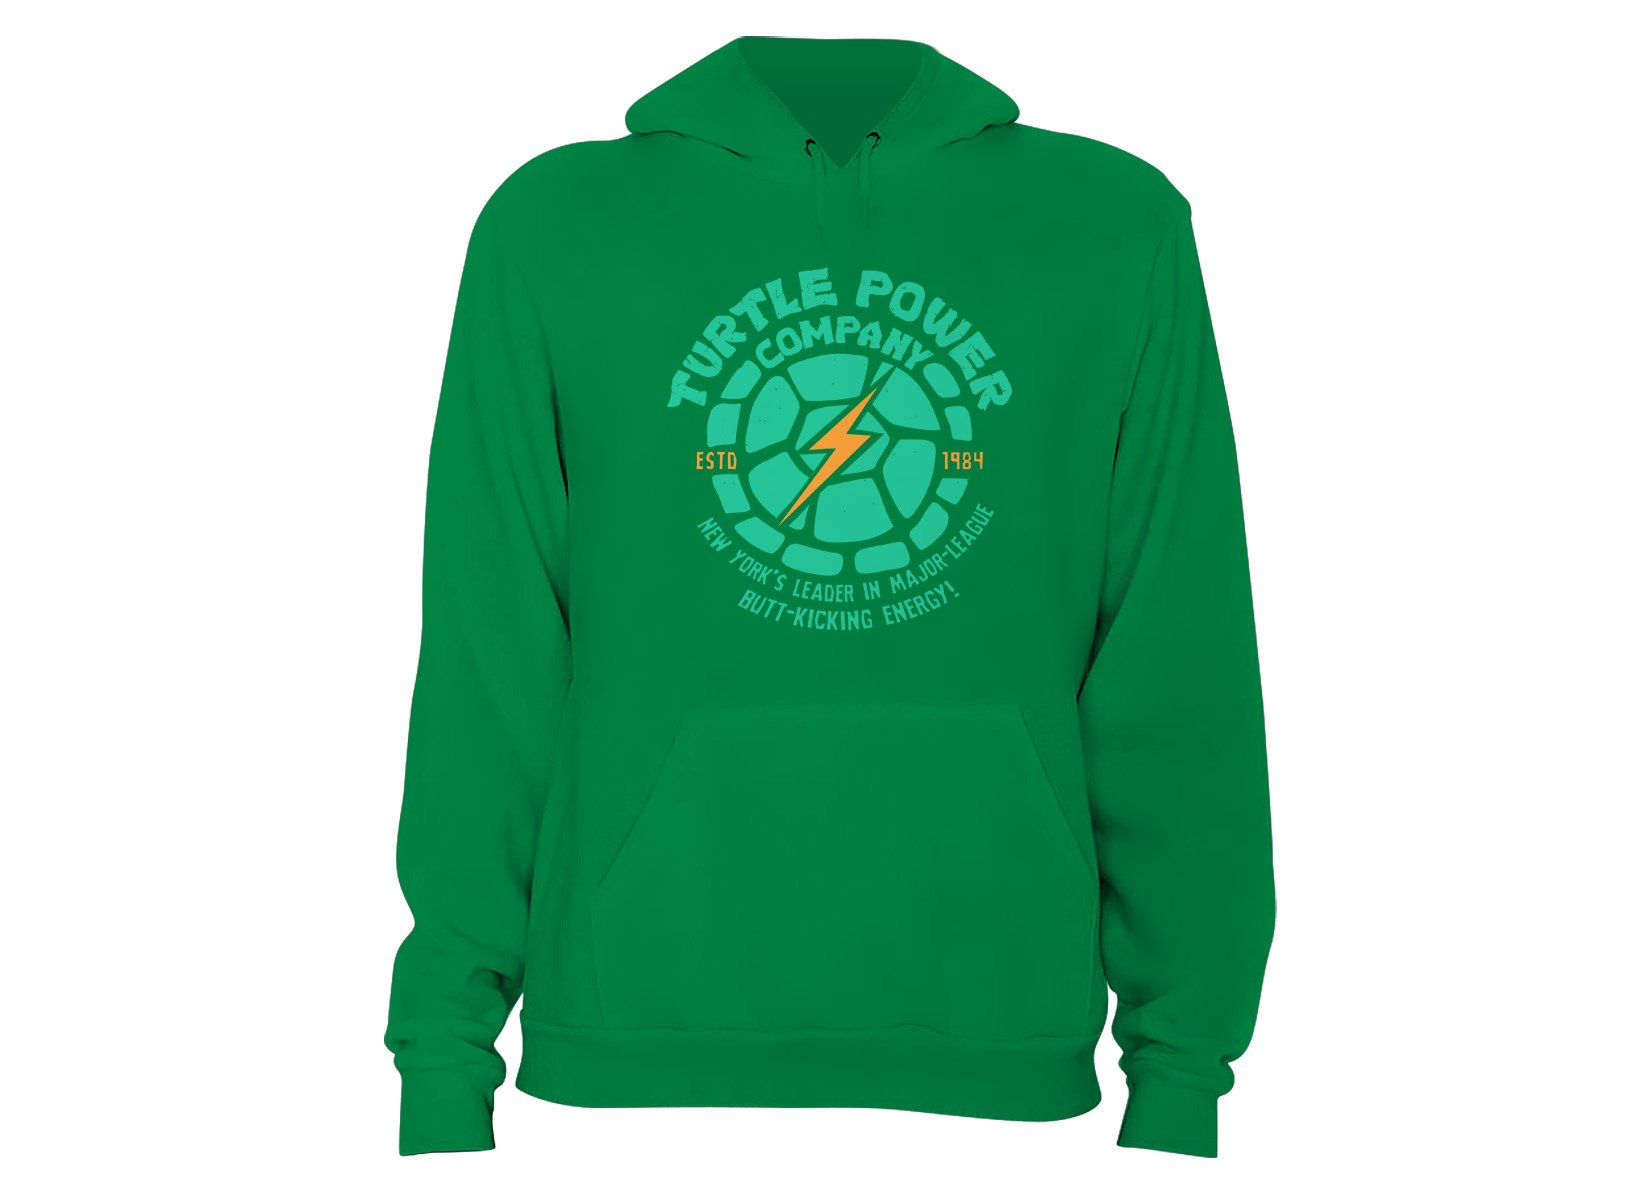 Turtle Power Company on Hoodie